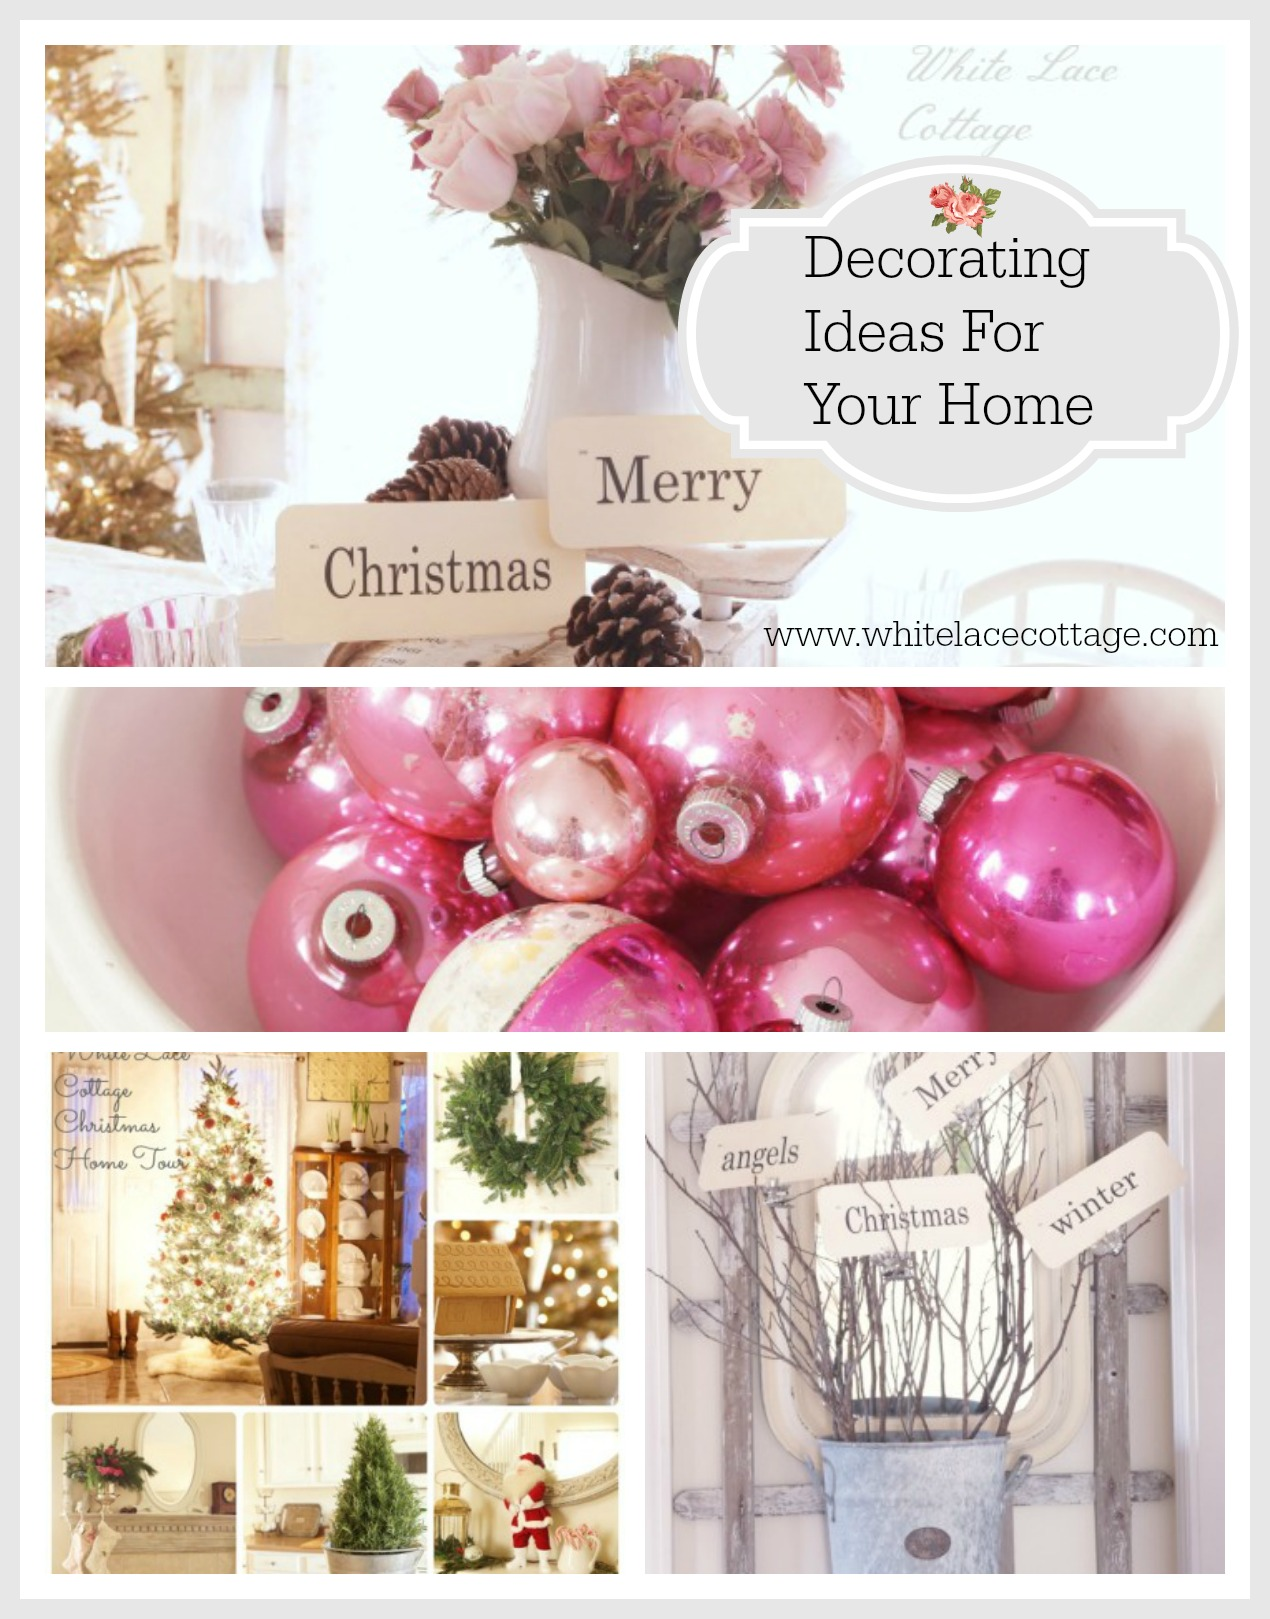 Christmas Decorating Ideas For Your Home White Lace Cottage